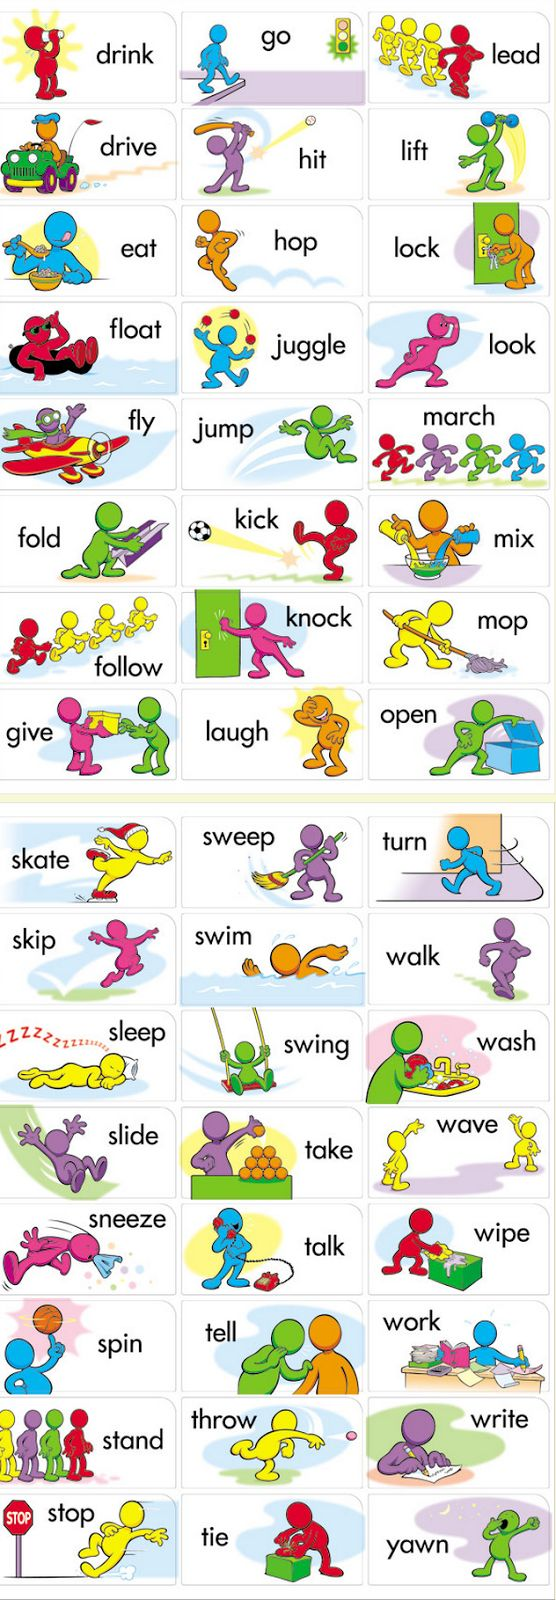 #verbs in #pictures 2